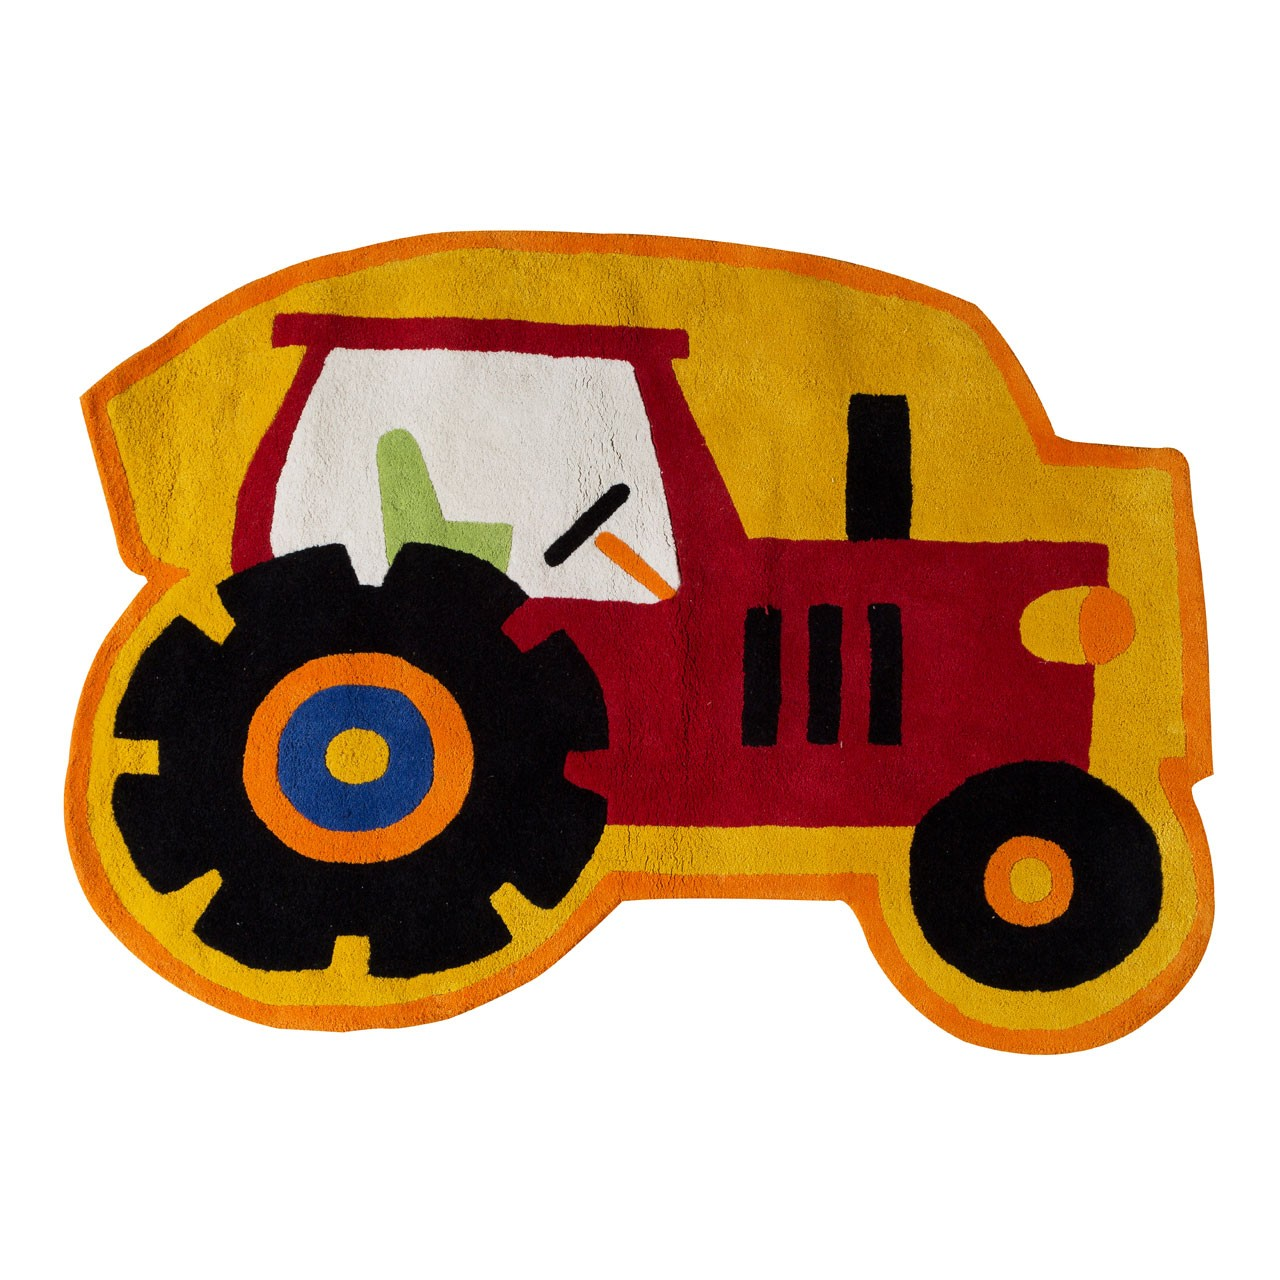 Prime Furnishing Kids Tractor Rug, Cotton - Red